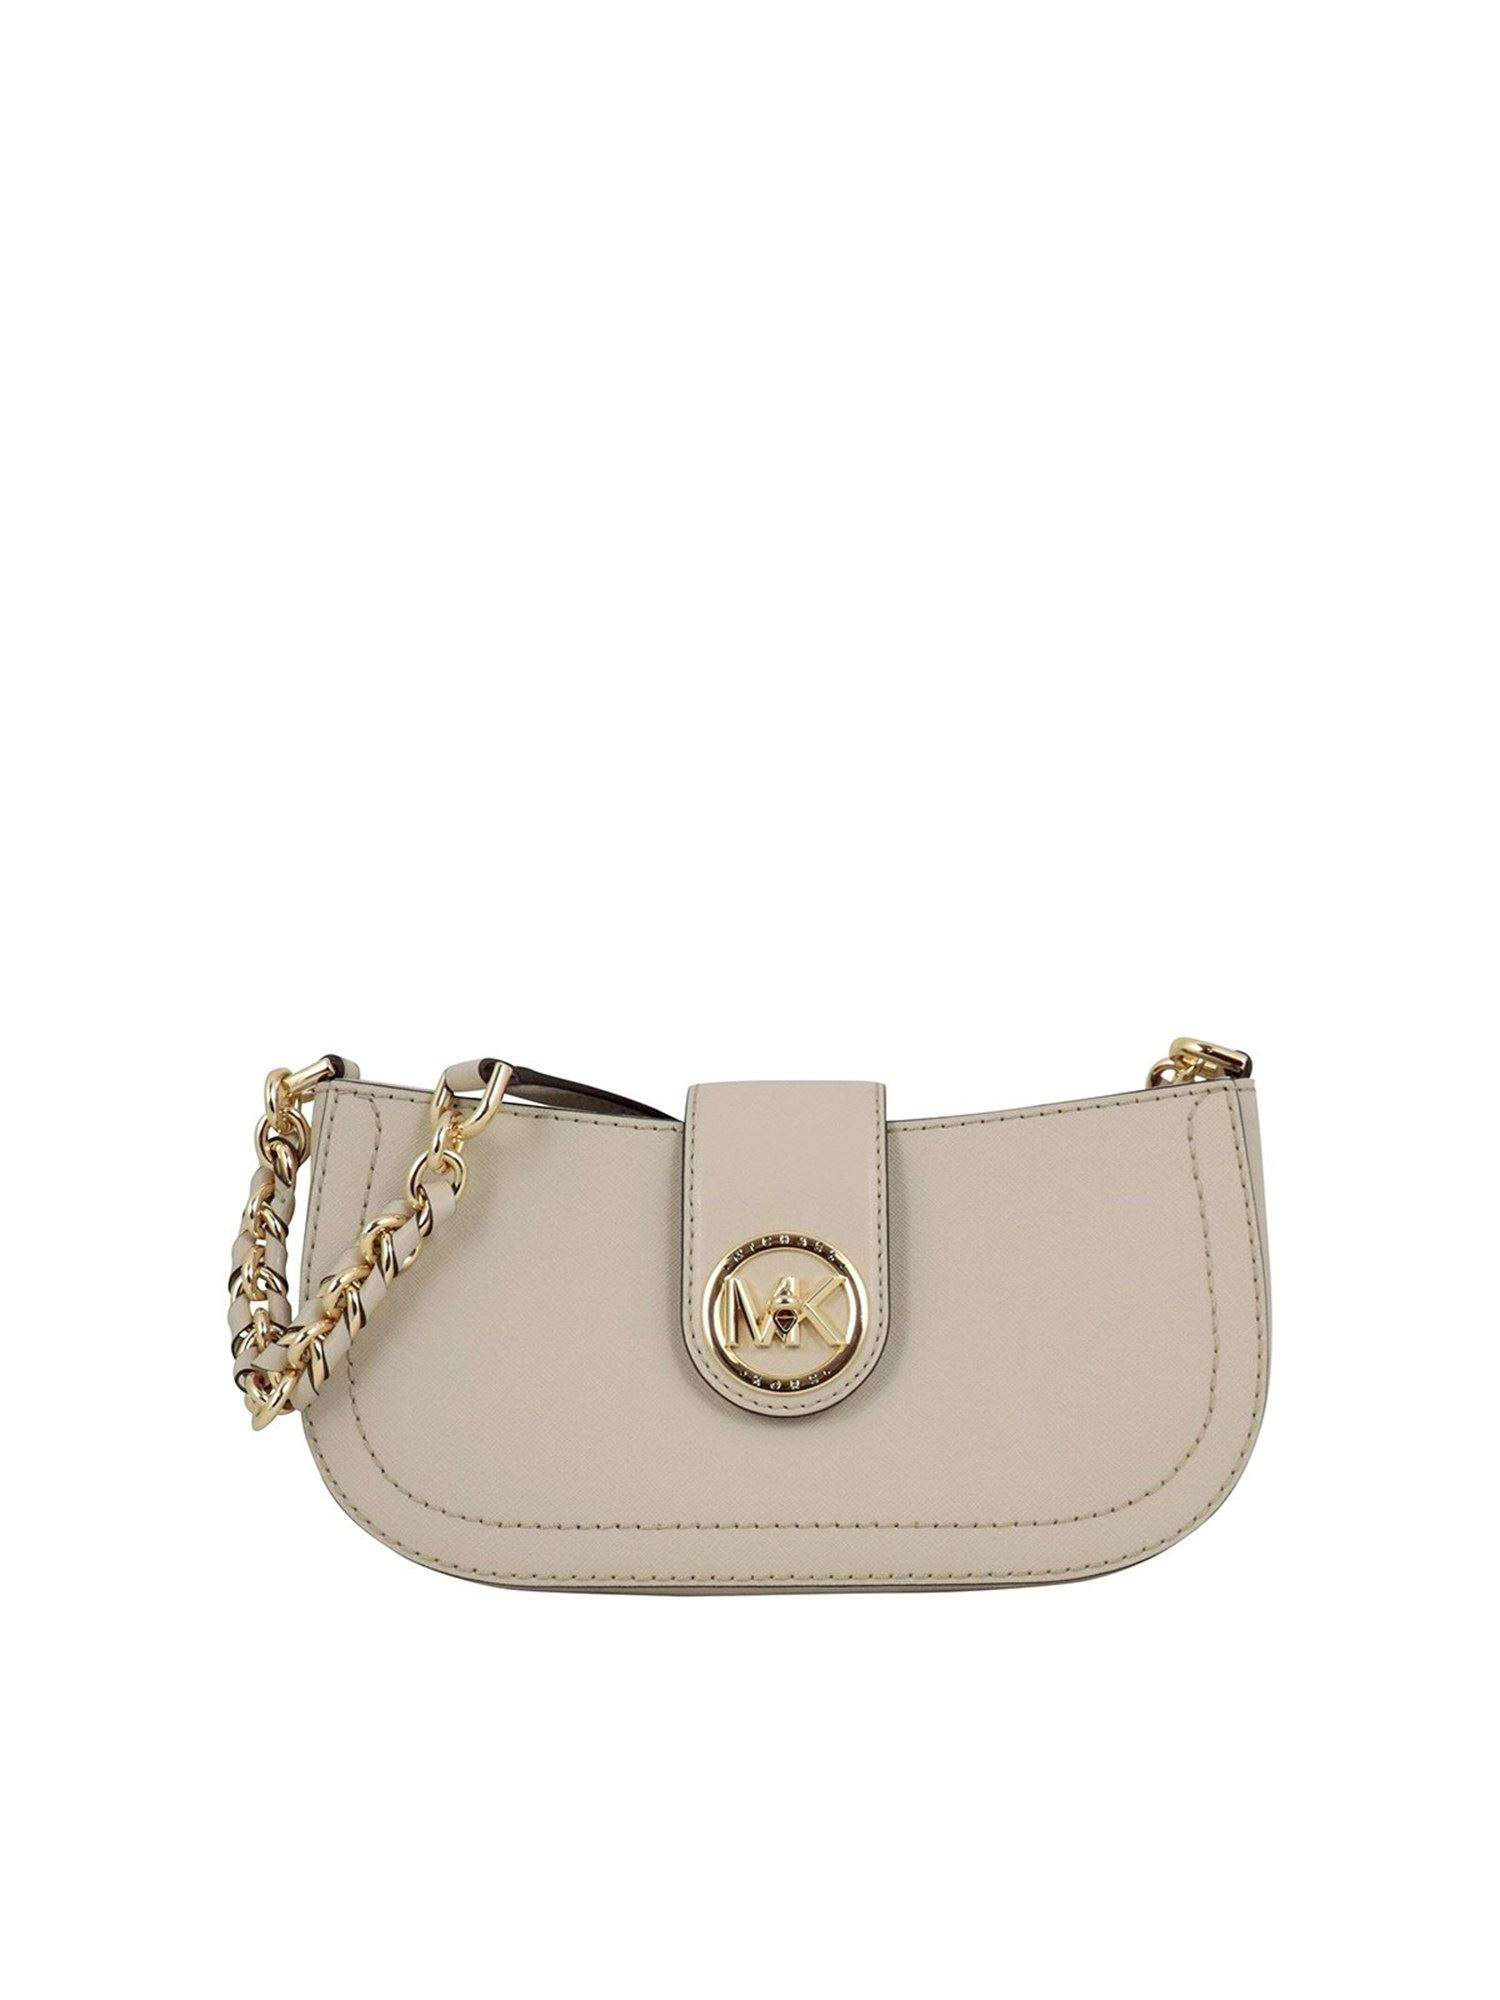 Michael Kors CARMEN XS SAFFIANO LEATHER SHOULDER BAG IN GREY